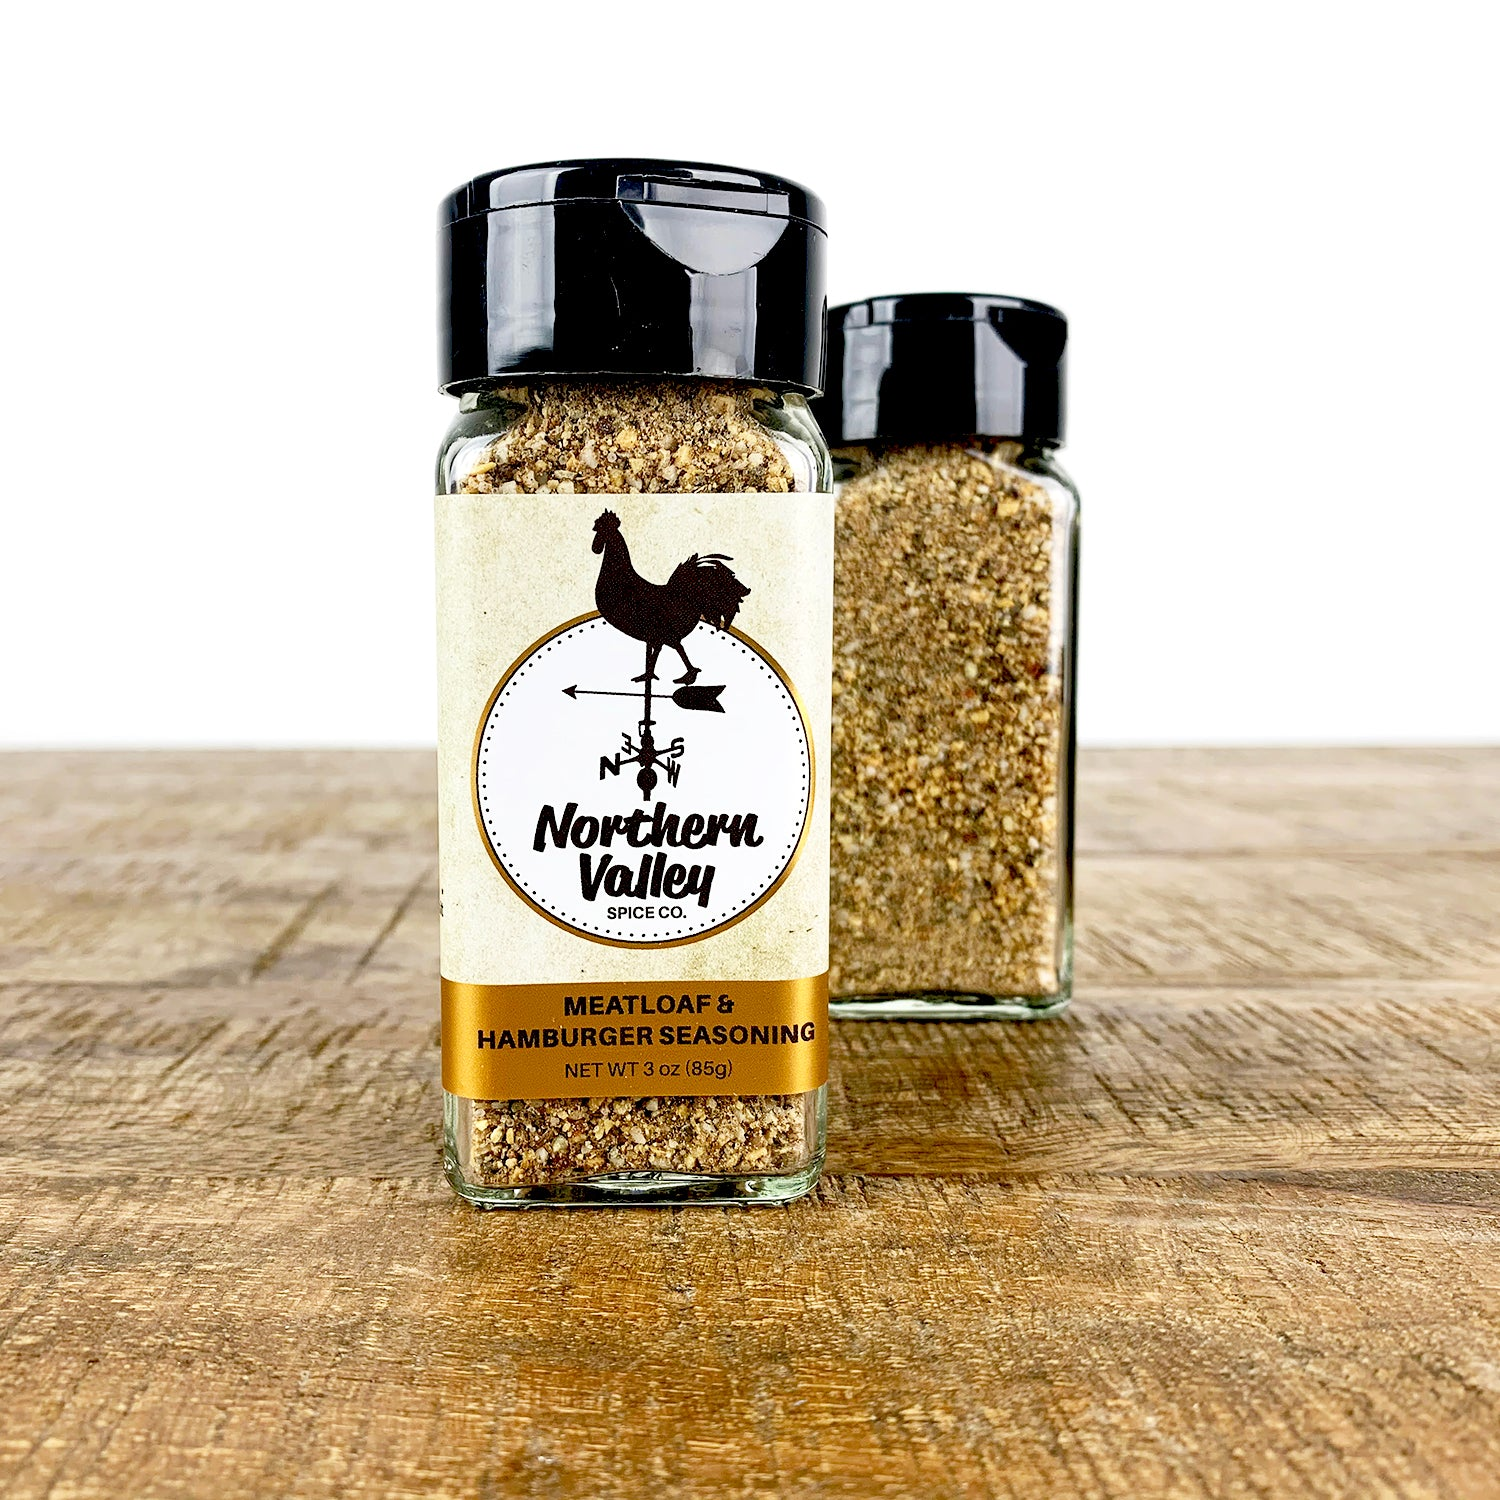 Meatloaf and Hamburger Seasoning | Spices | Northern Valley Spice Co.